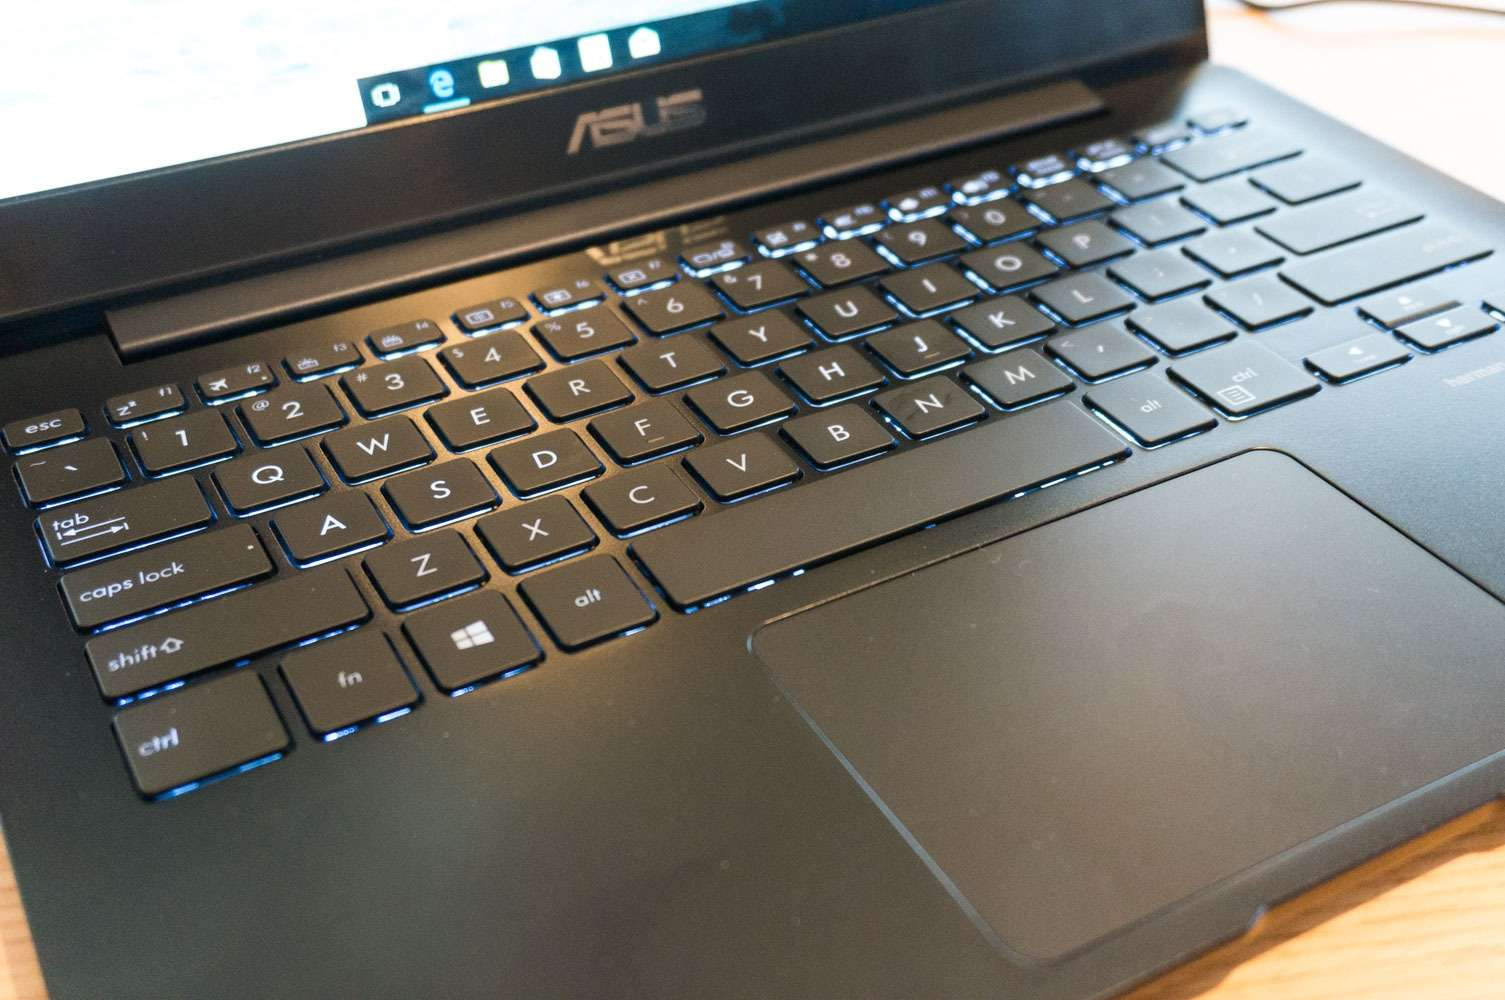 Asus Zenbook 13 Ux331ual Hands On Review Release Date Prices